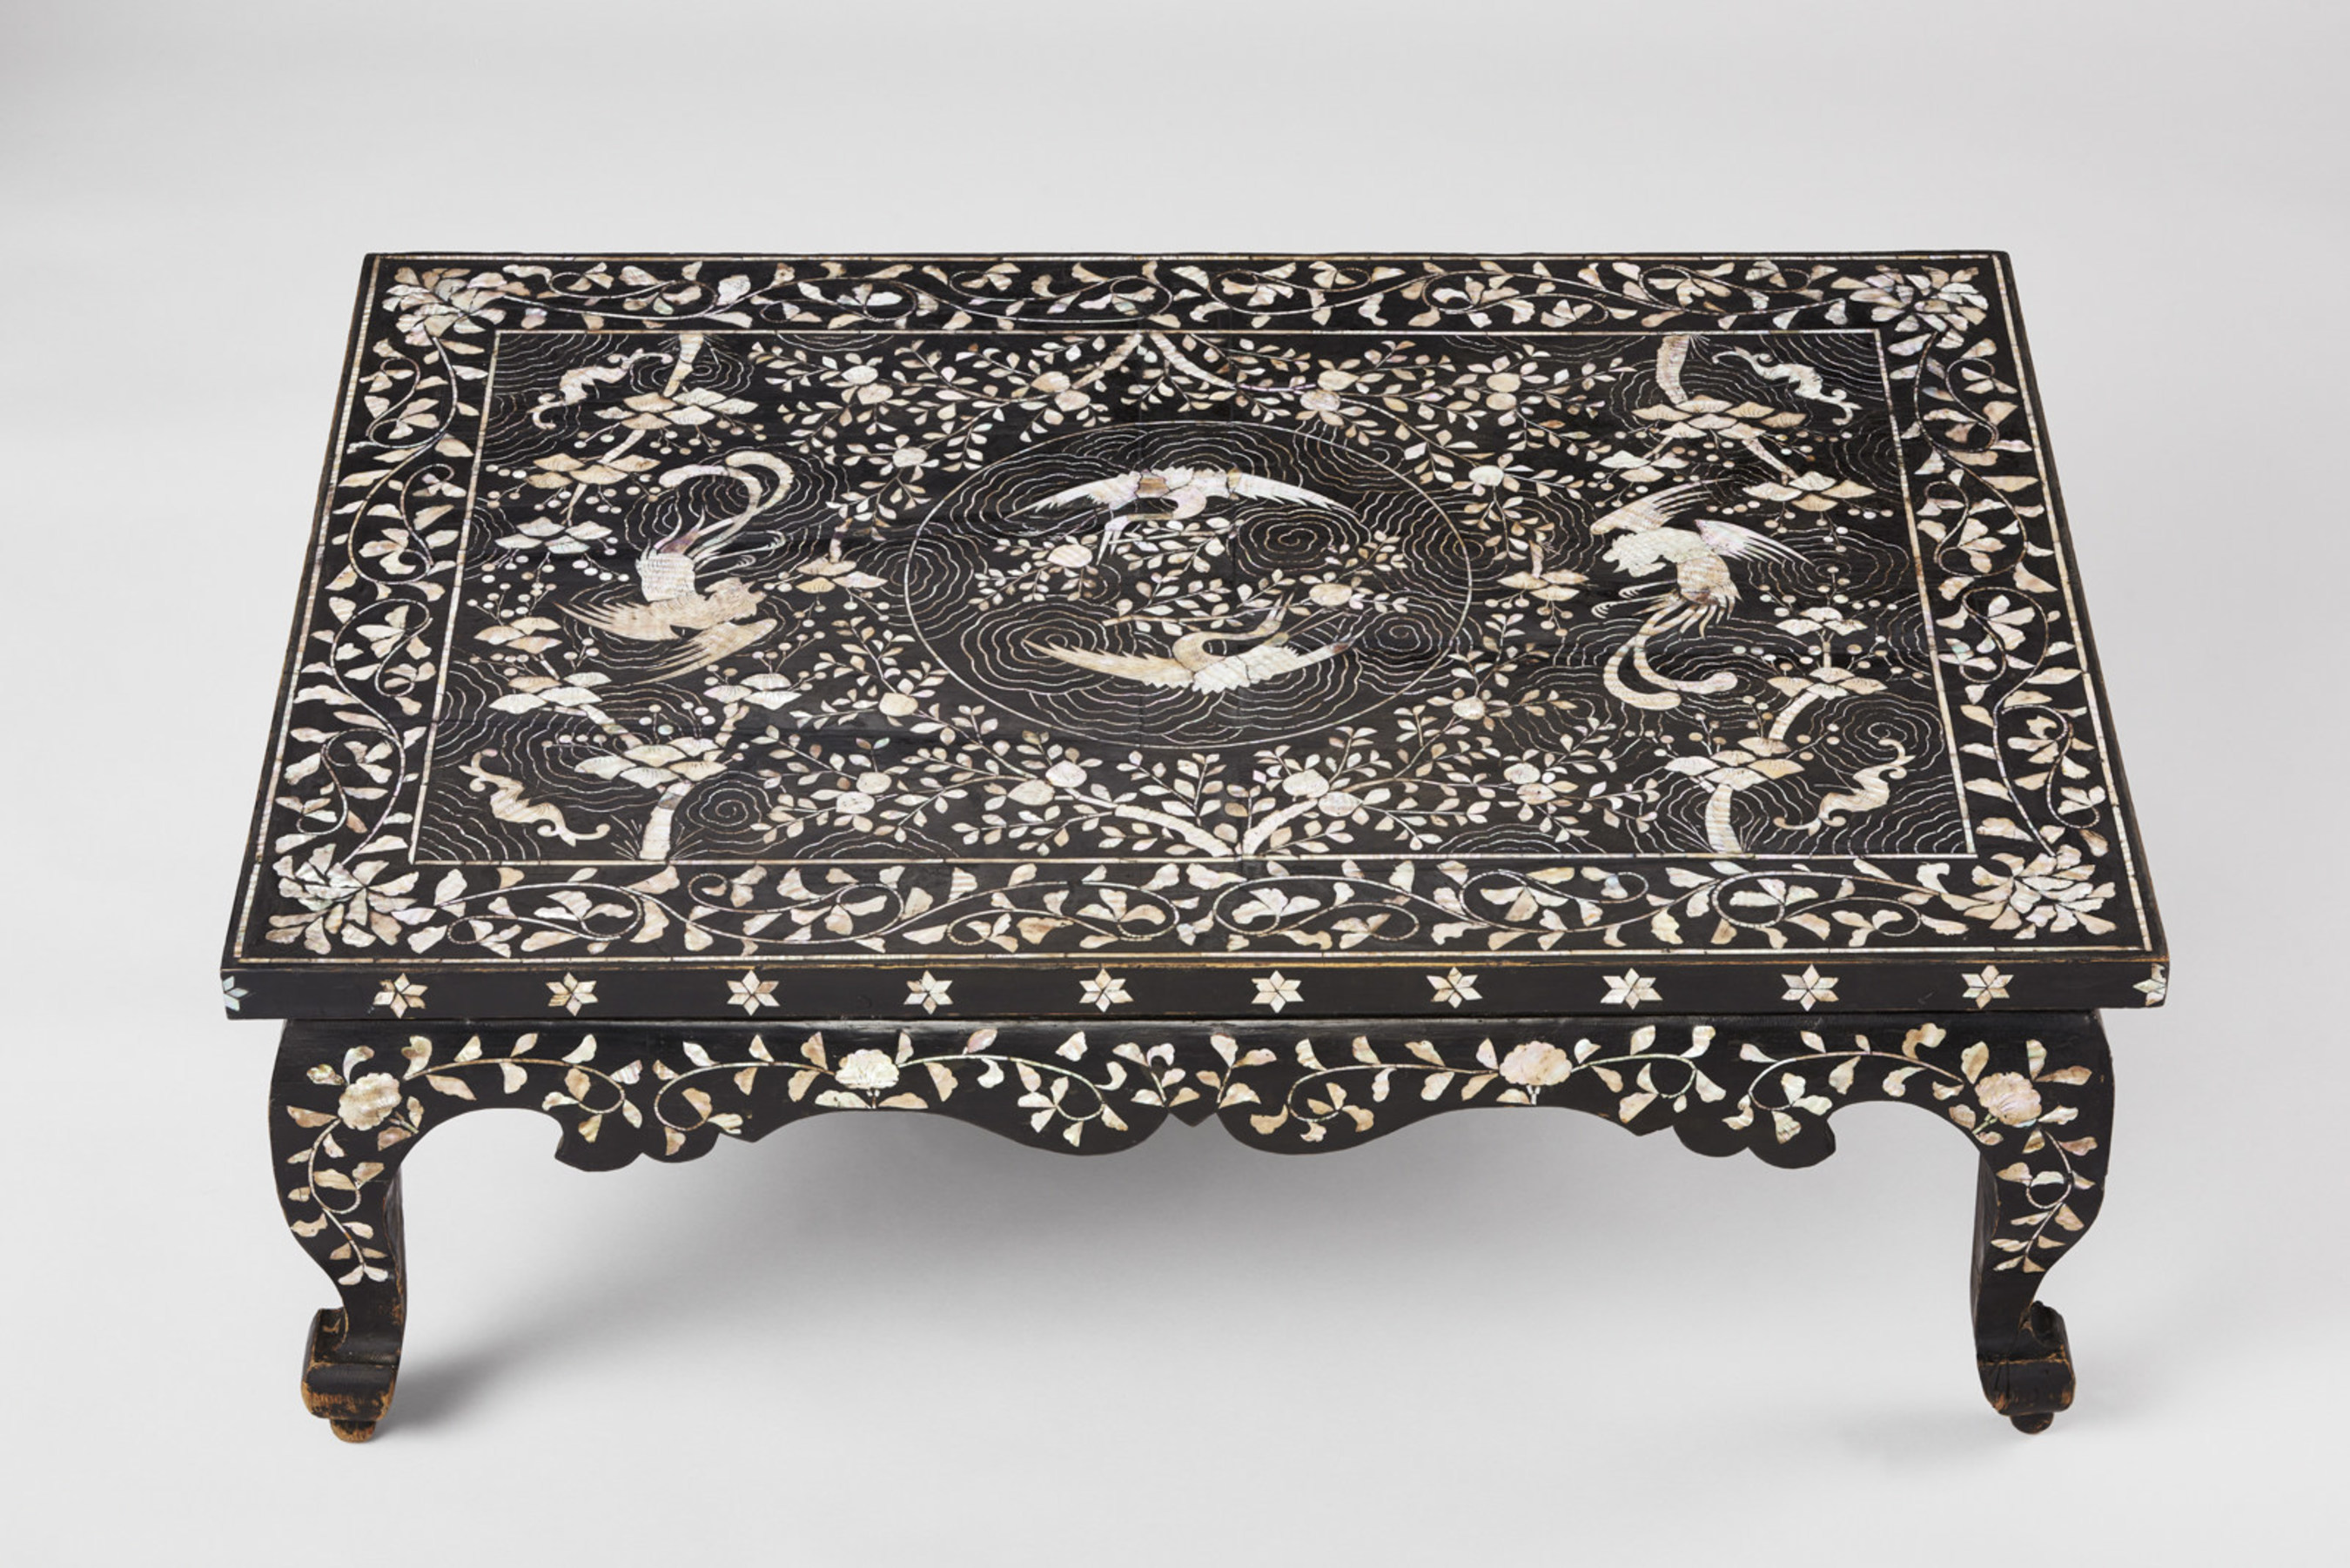 Table with phoenix, crane, and peach motif, 1800-1900. Korea, Joseon dynasty (1392-1910). Lacquered wood with inlaid mother-of-pearl. Asian Art Museum, Museum purchase, 2016.39. Photograph (C) Asian Art Museum.